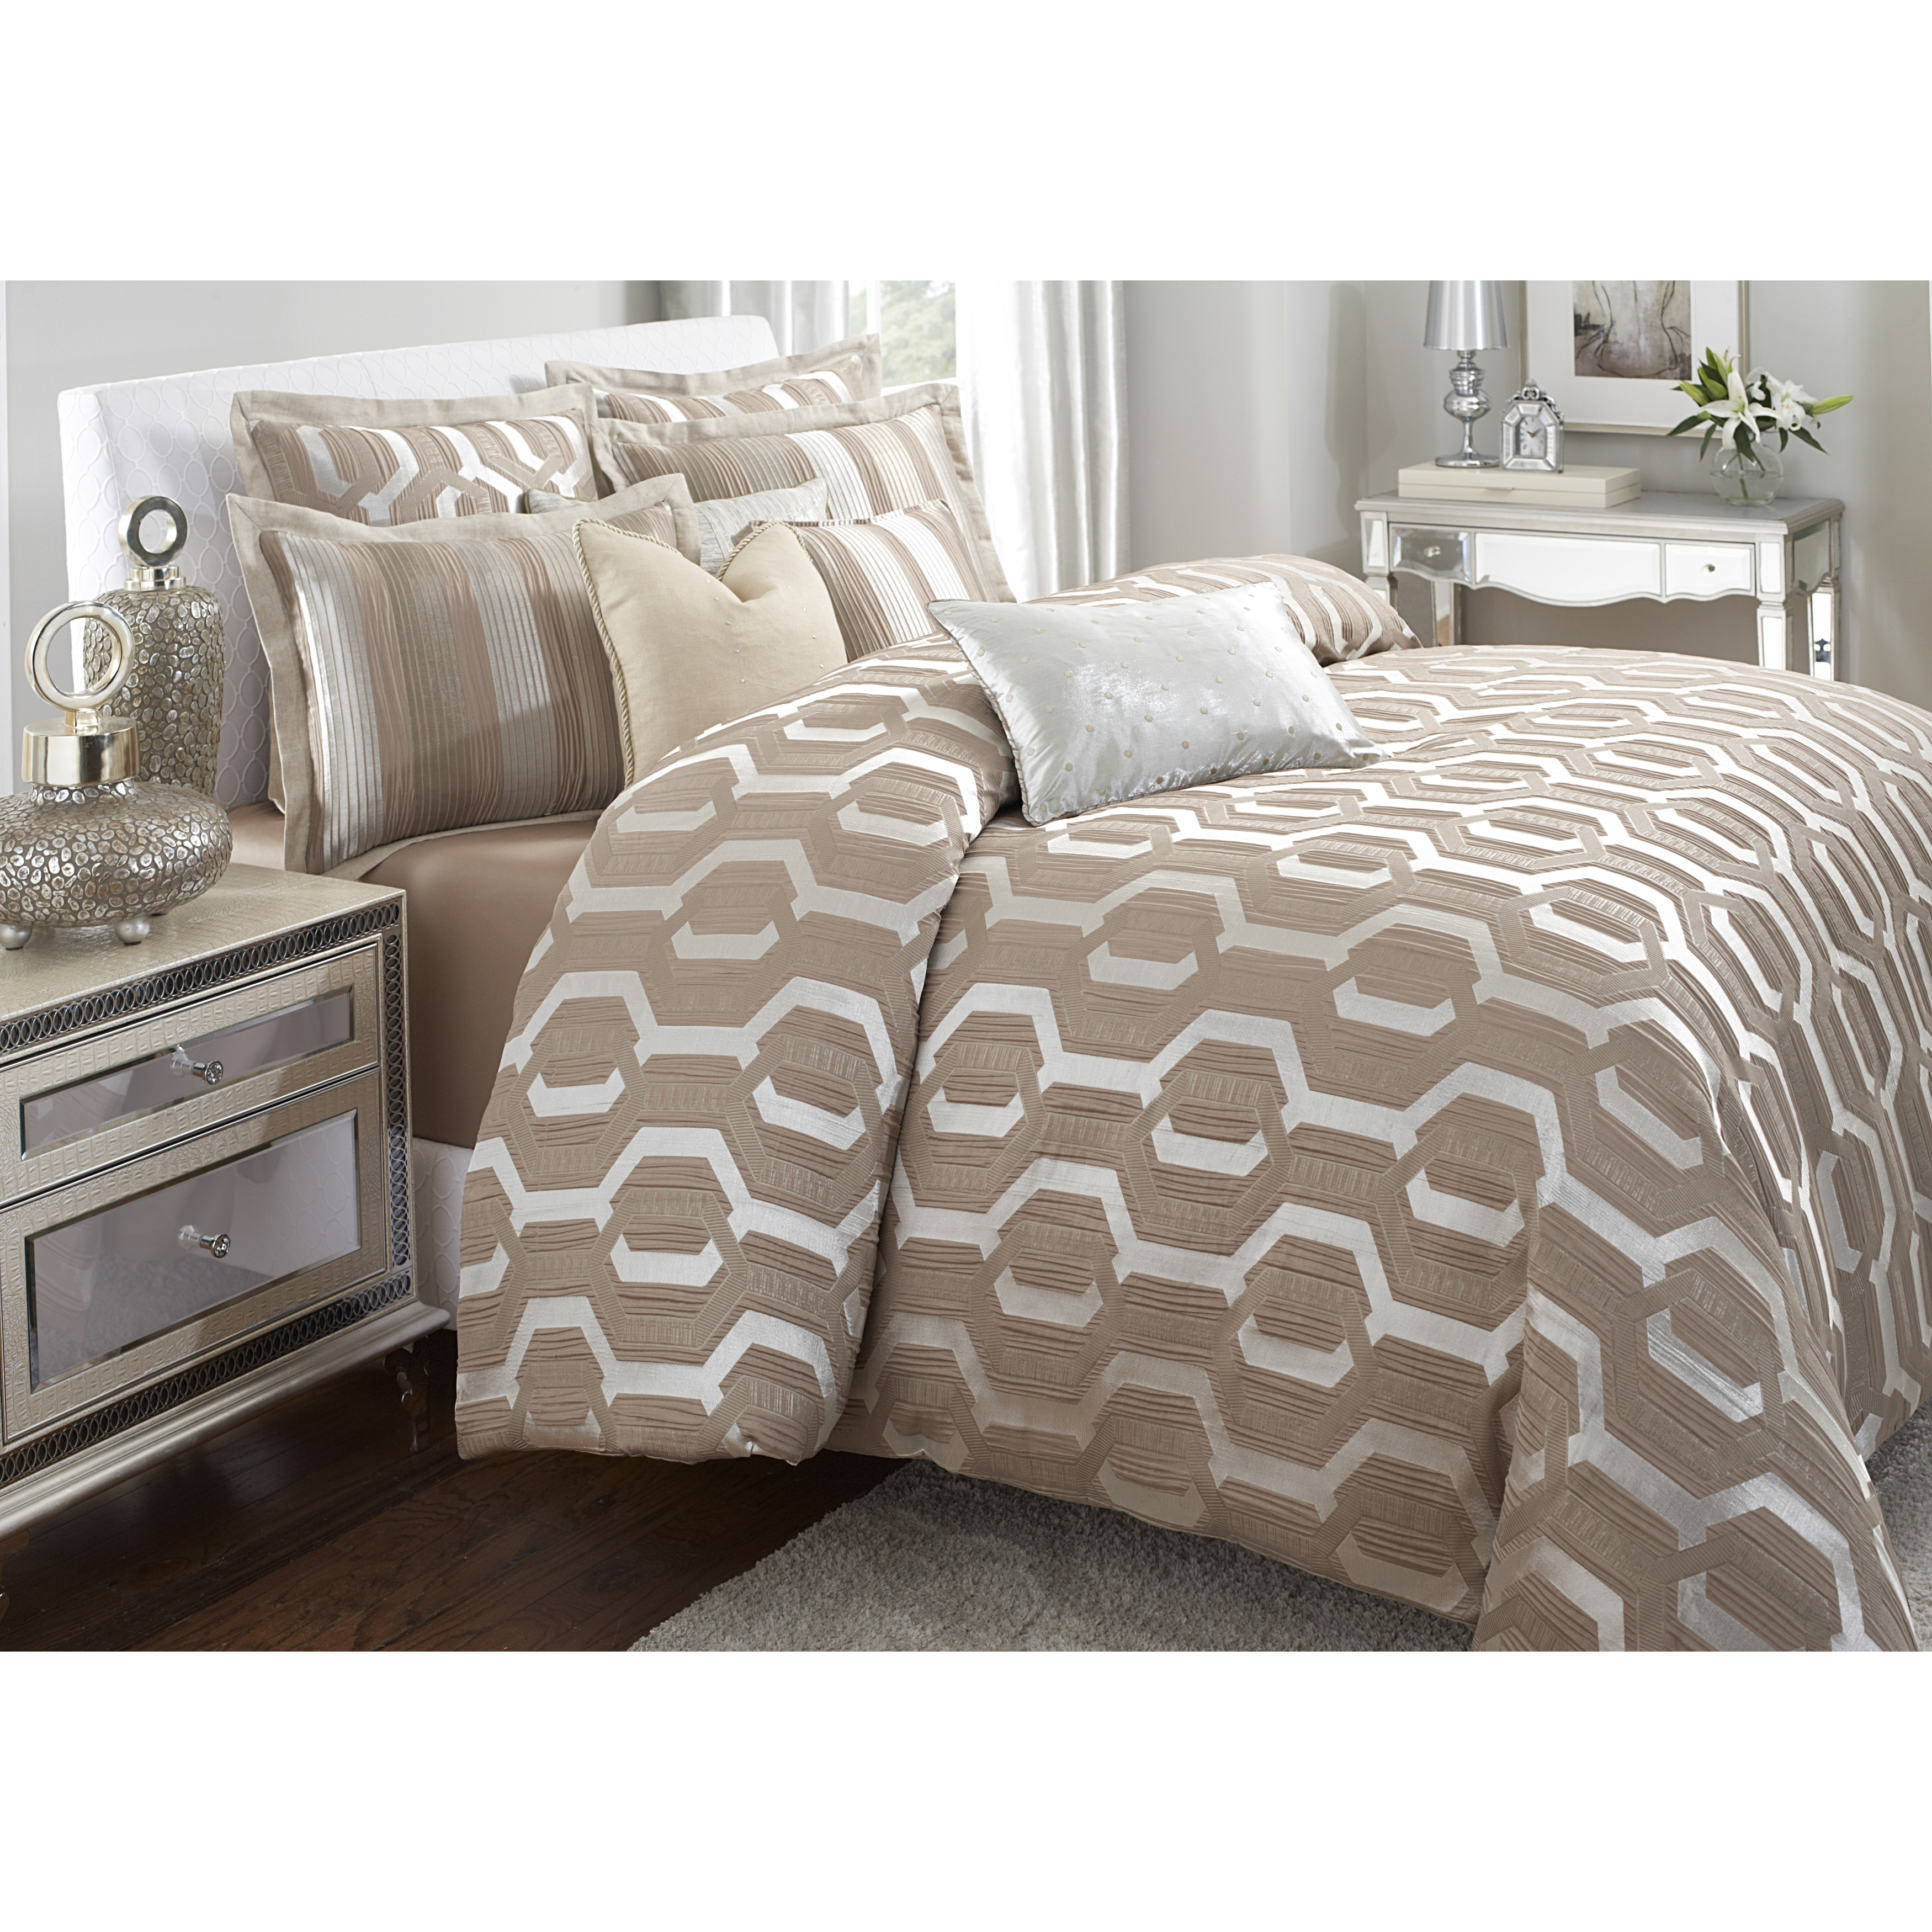 decoration taupe for sets using comforter hotel bedding ideas bed ruffled amini king michael com bedspread size bedroom luxury set discount wonderful